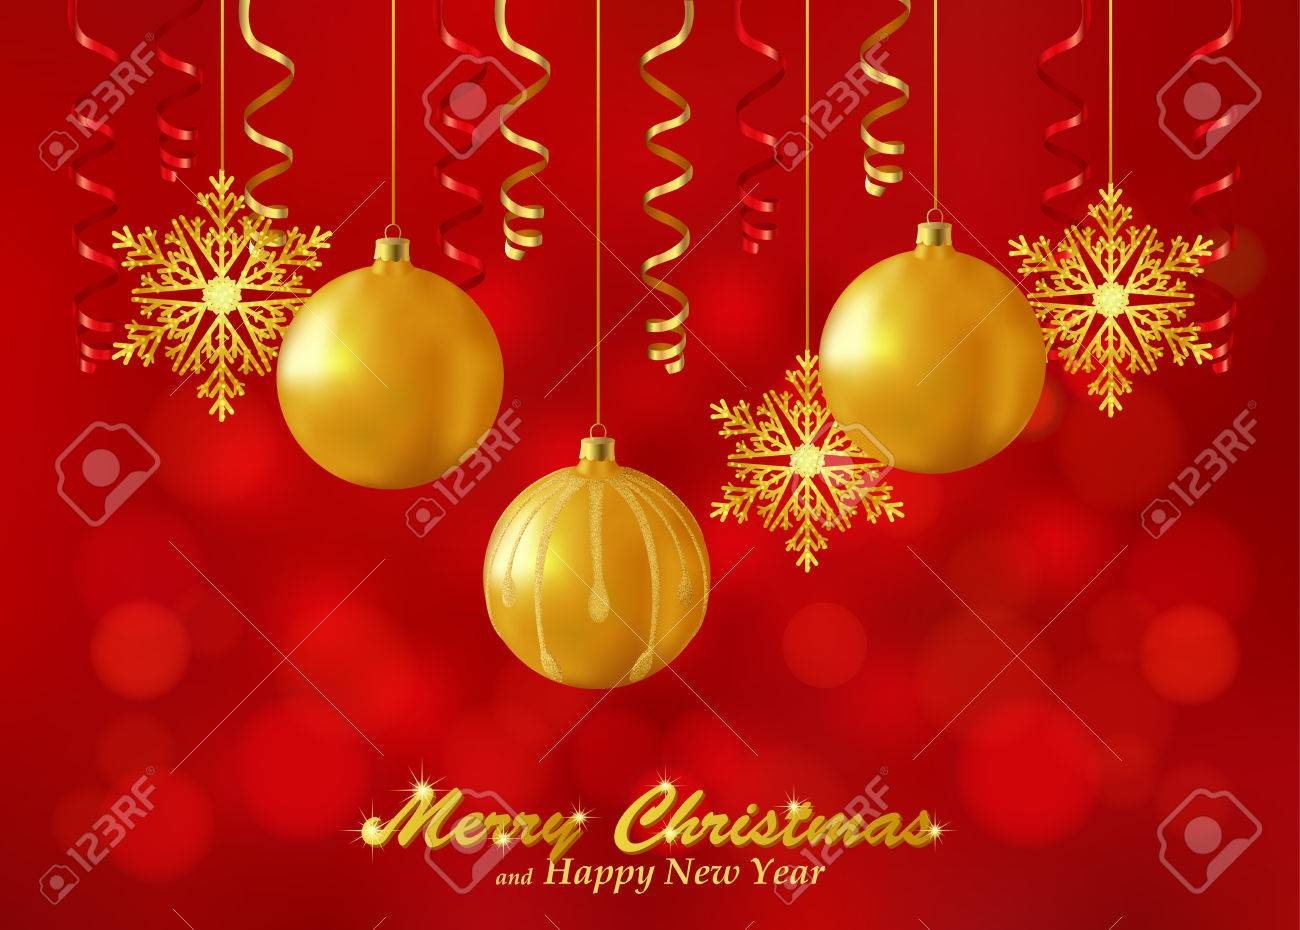 Holiday Red Background With Christmas Ornaments Decorated Glass Balls Snowflakes And